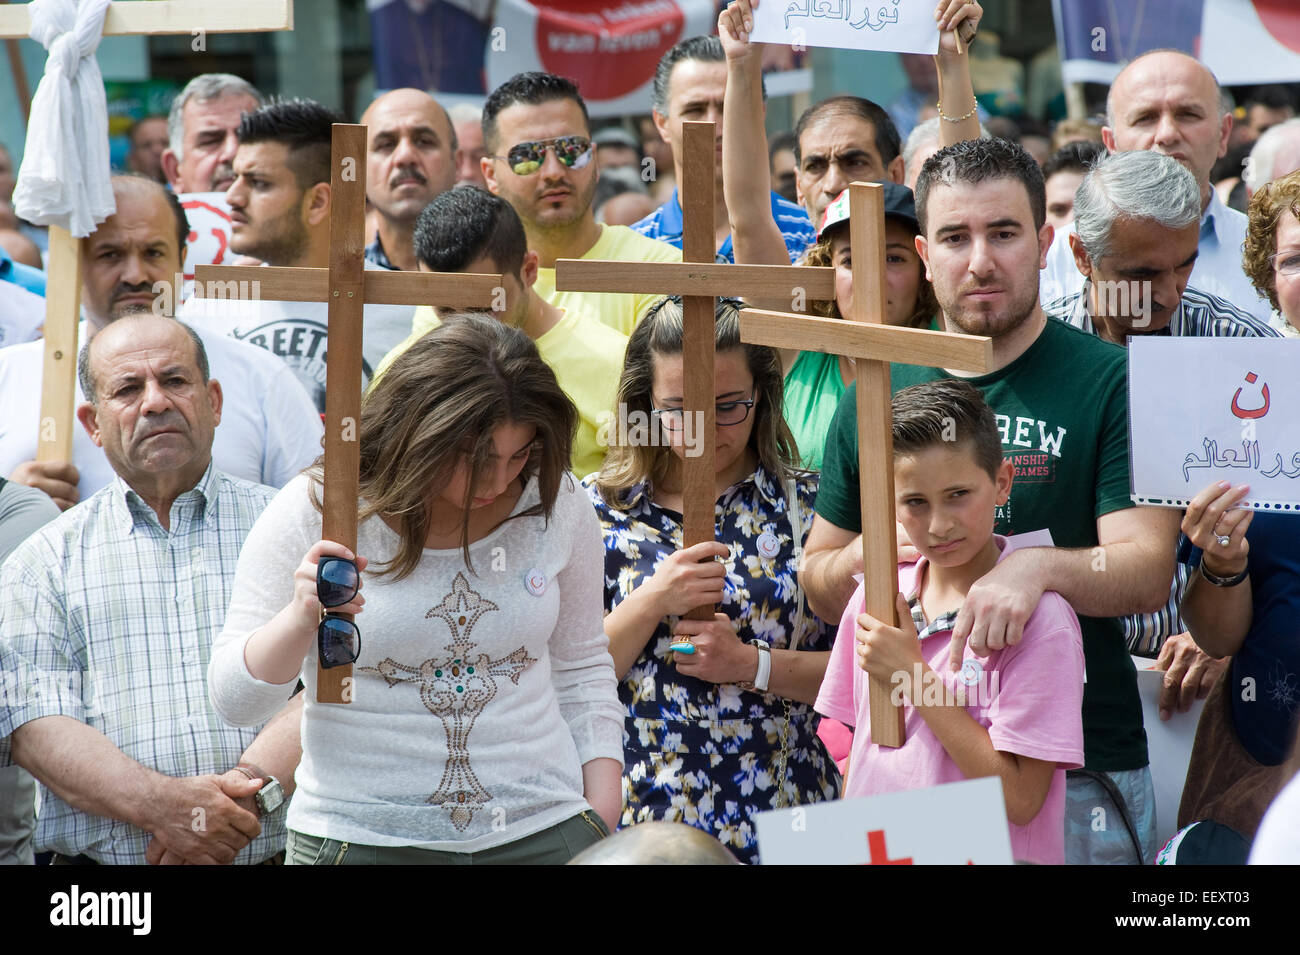 A minute of silence during a demonstration organized by suryoye christians against the slaughter of christians in - Stock Image